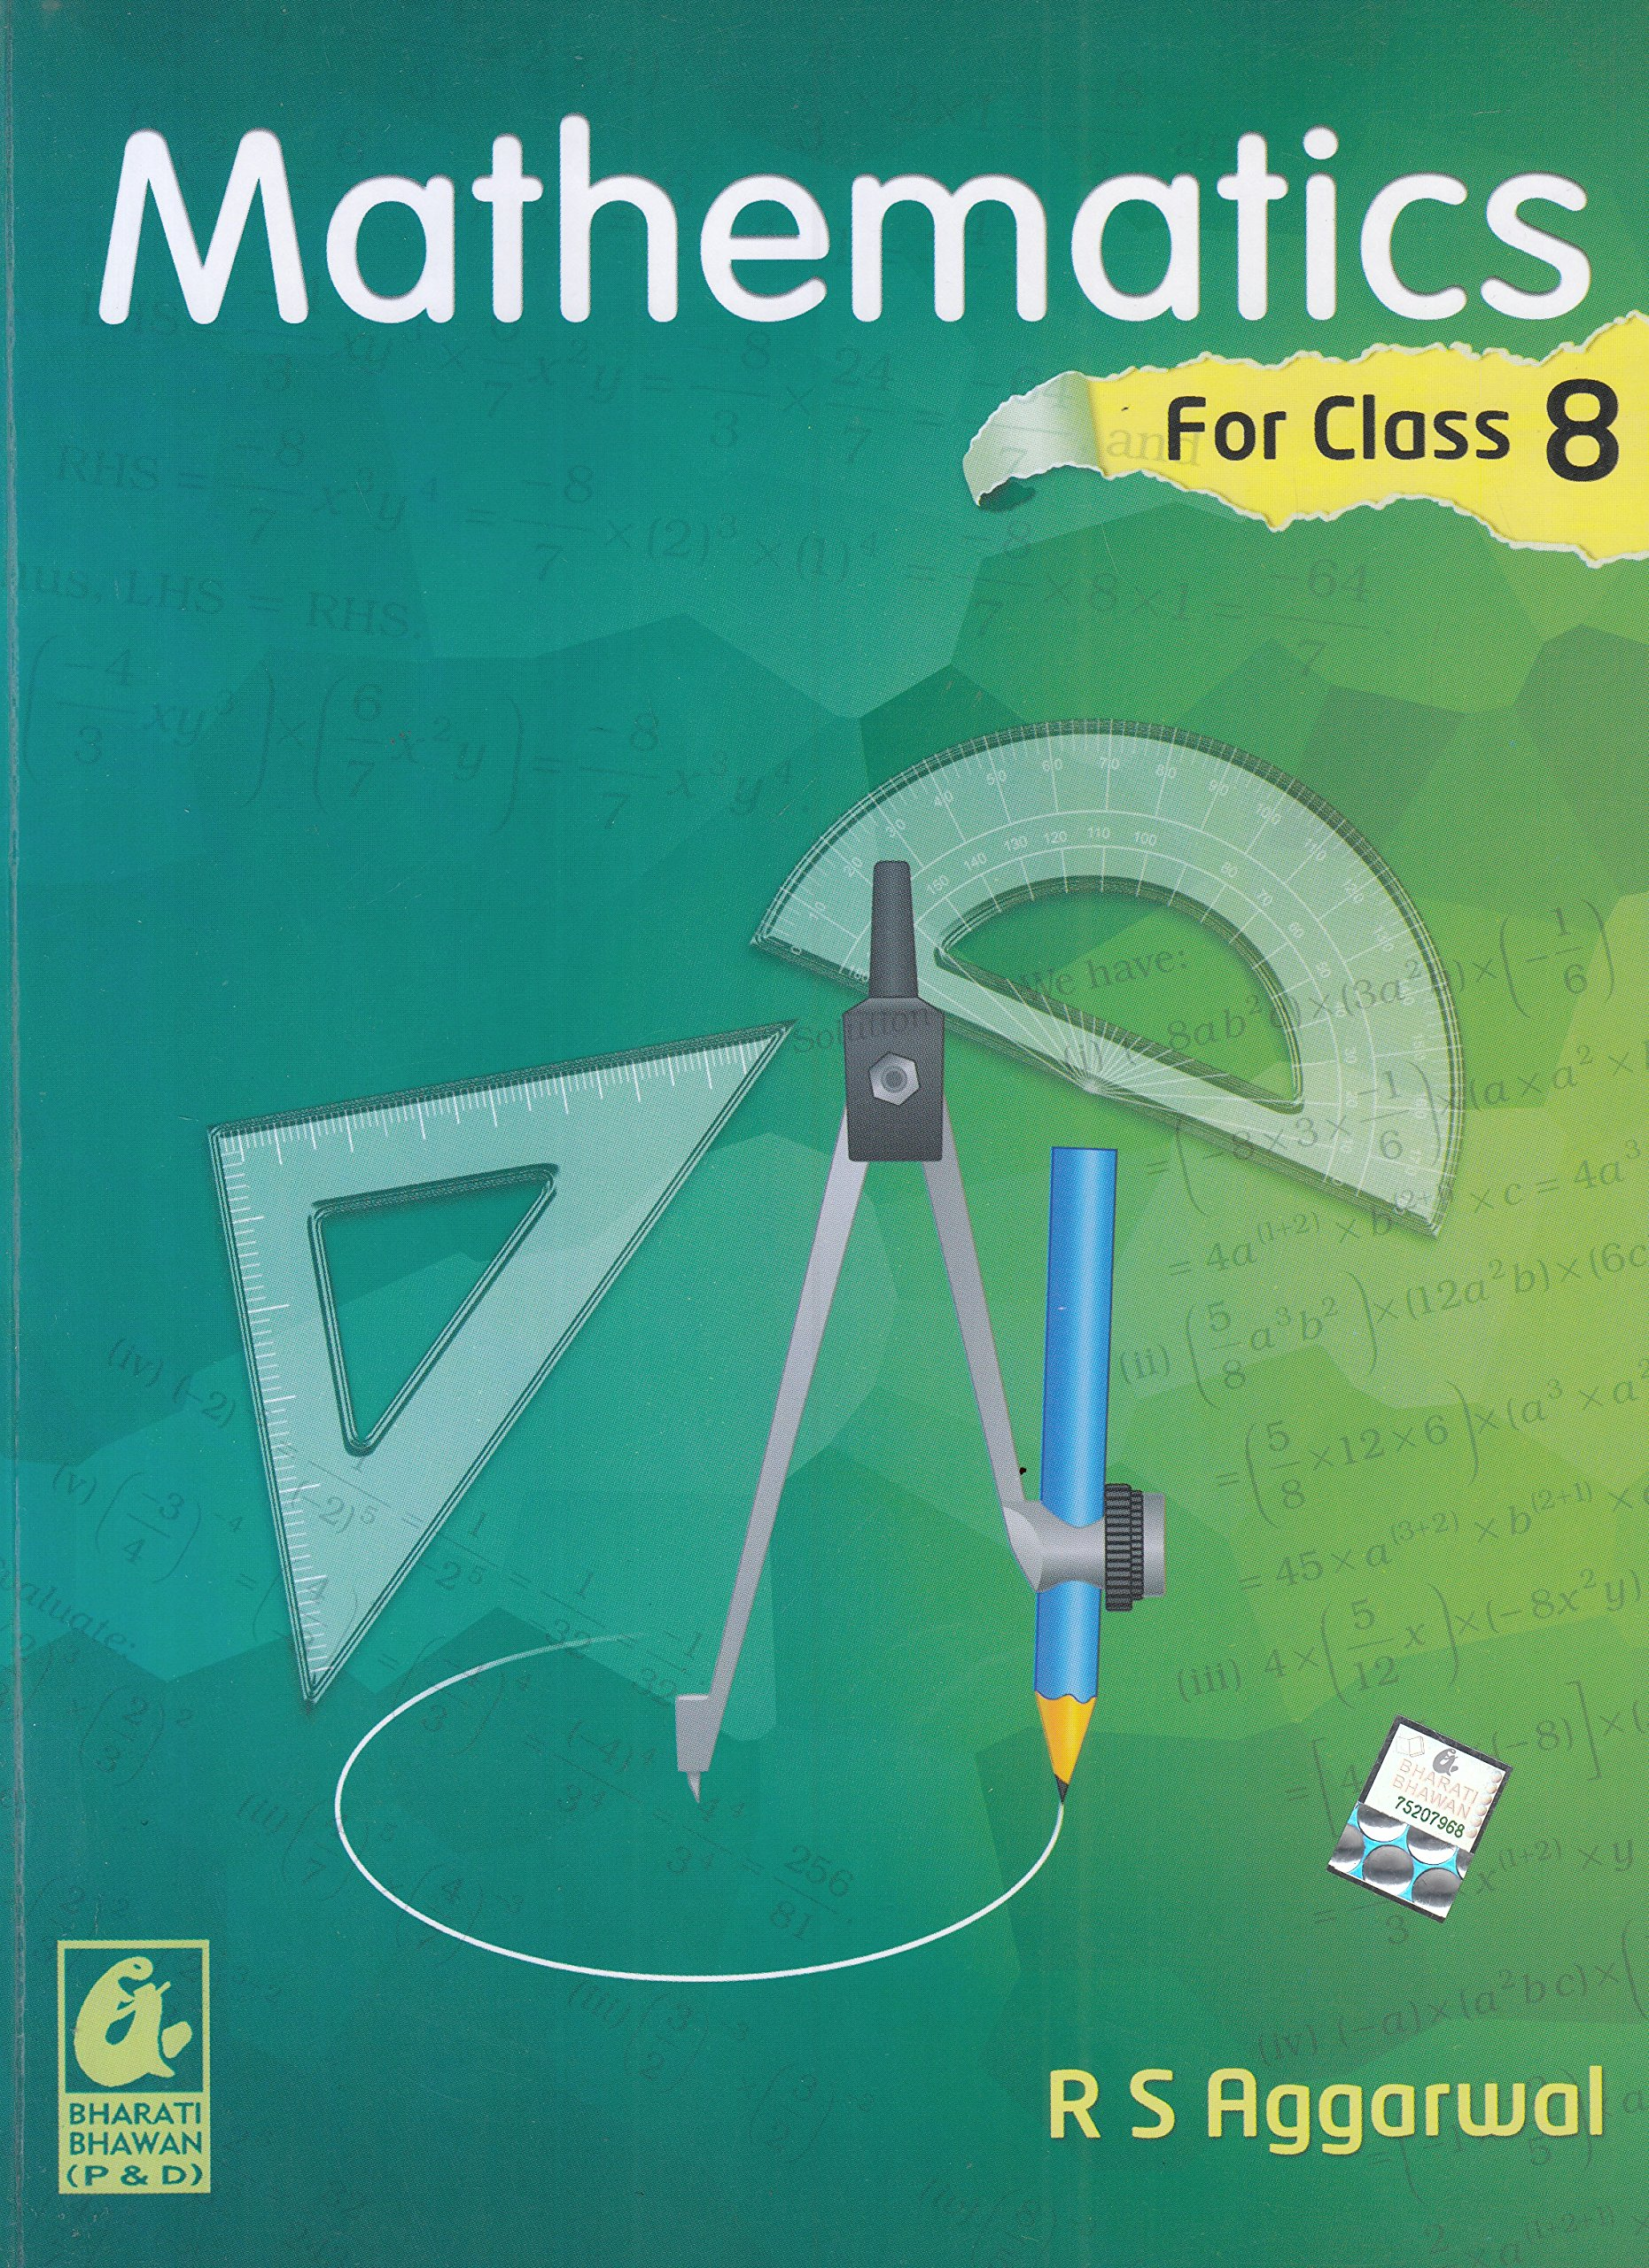 Mathematics for Class 8 by R S Aggarwal 2018-19 Session: Amazon.in ...